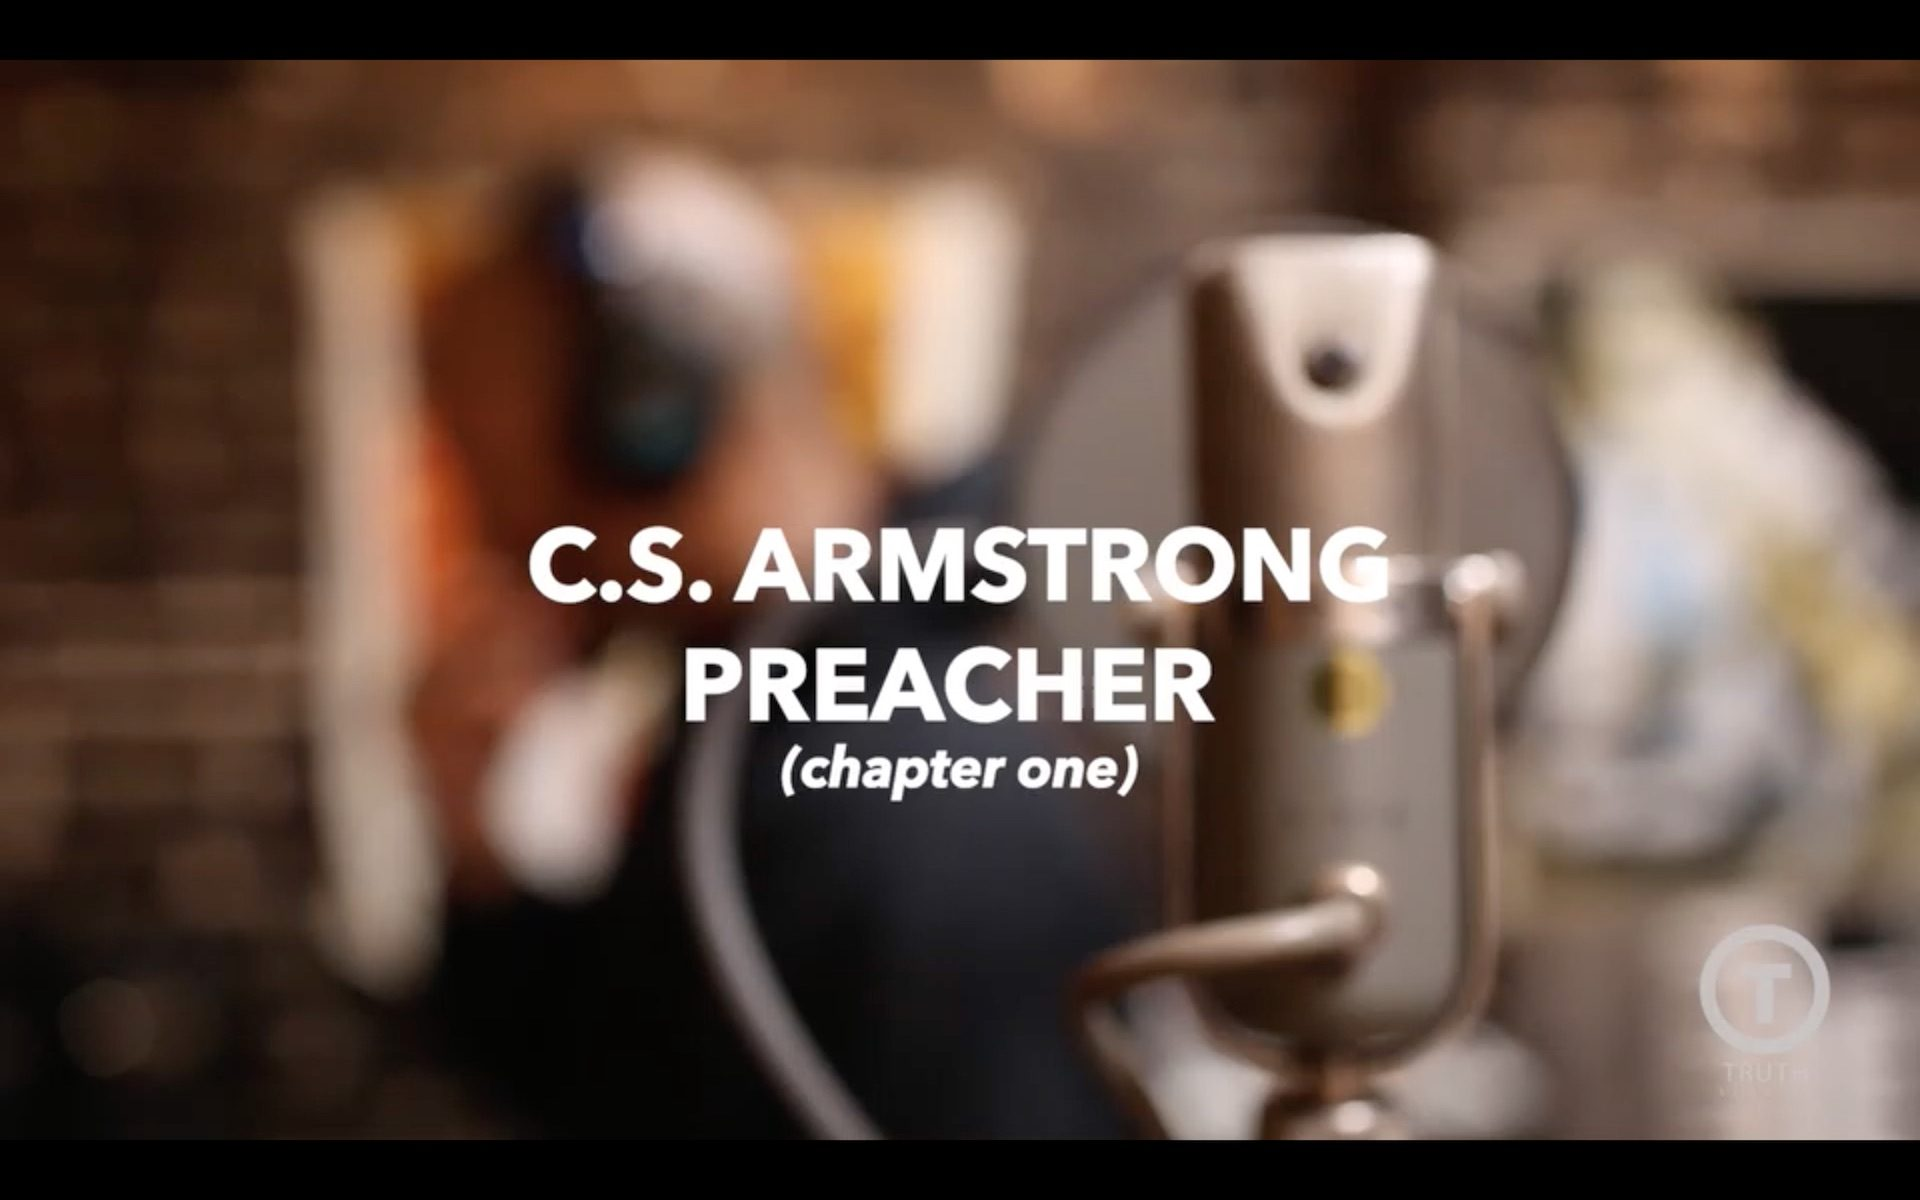 C.S. Armstrong - Preacher (Chapter one)